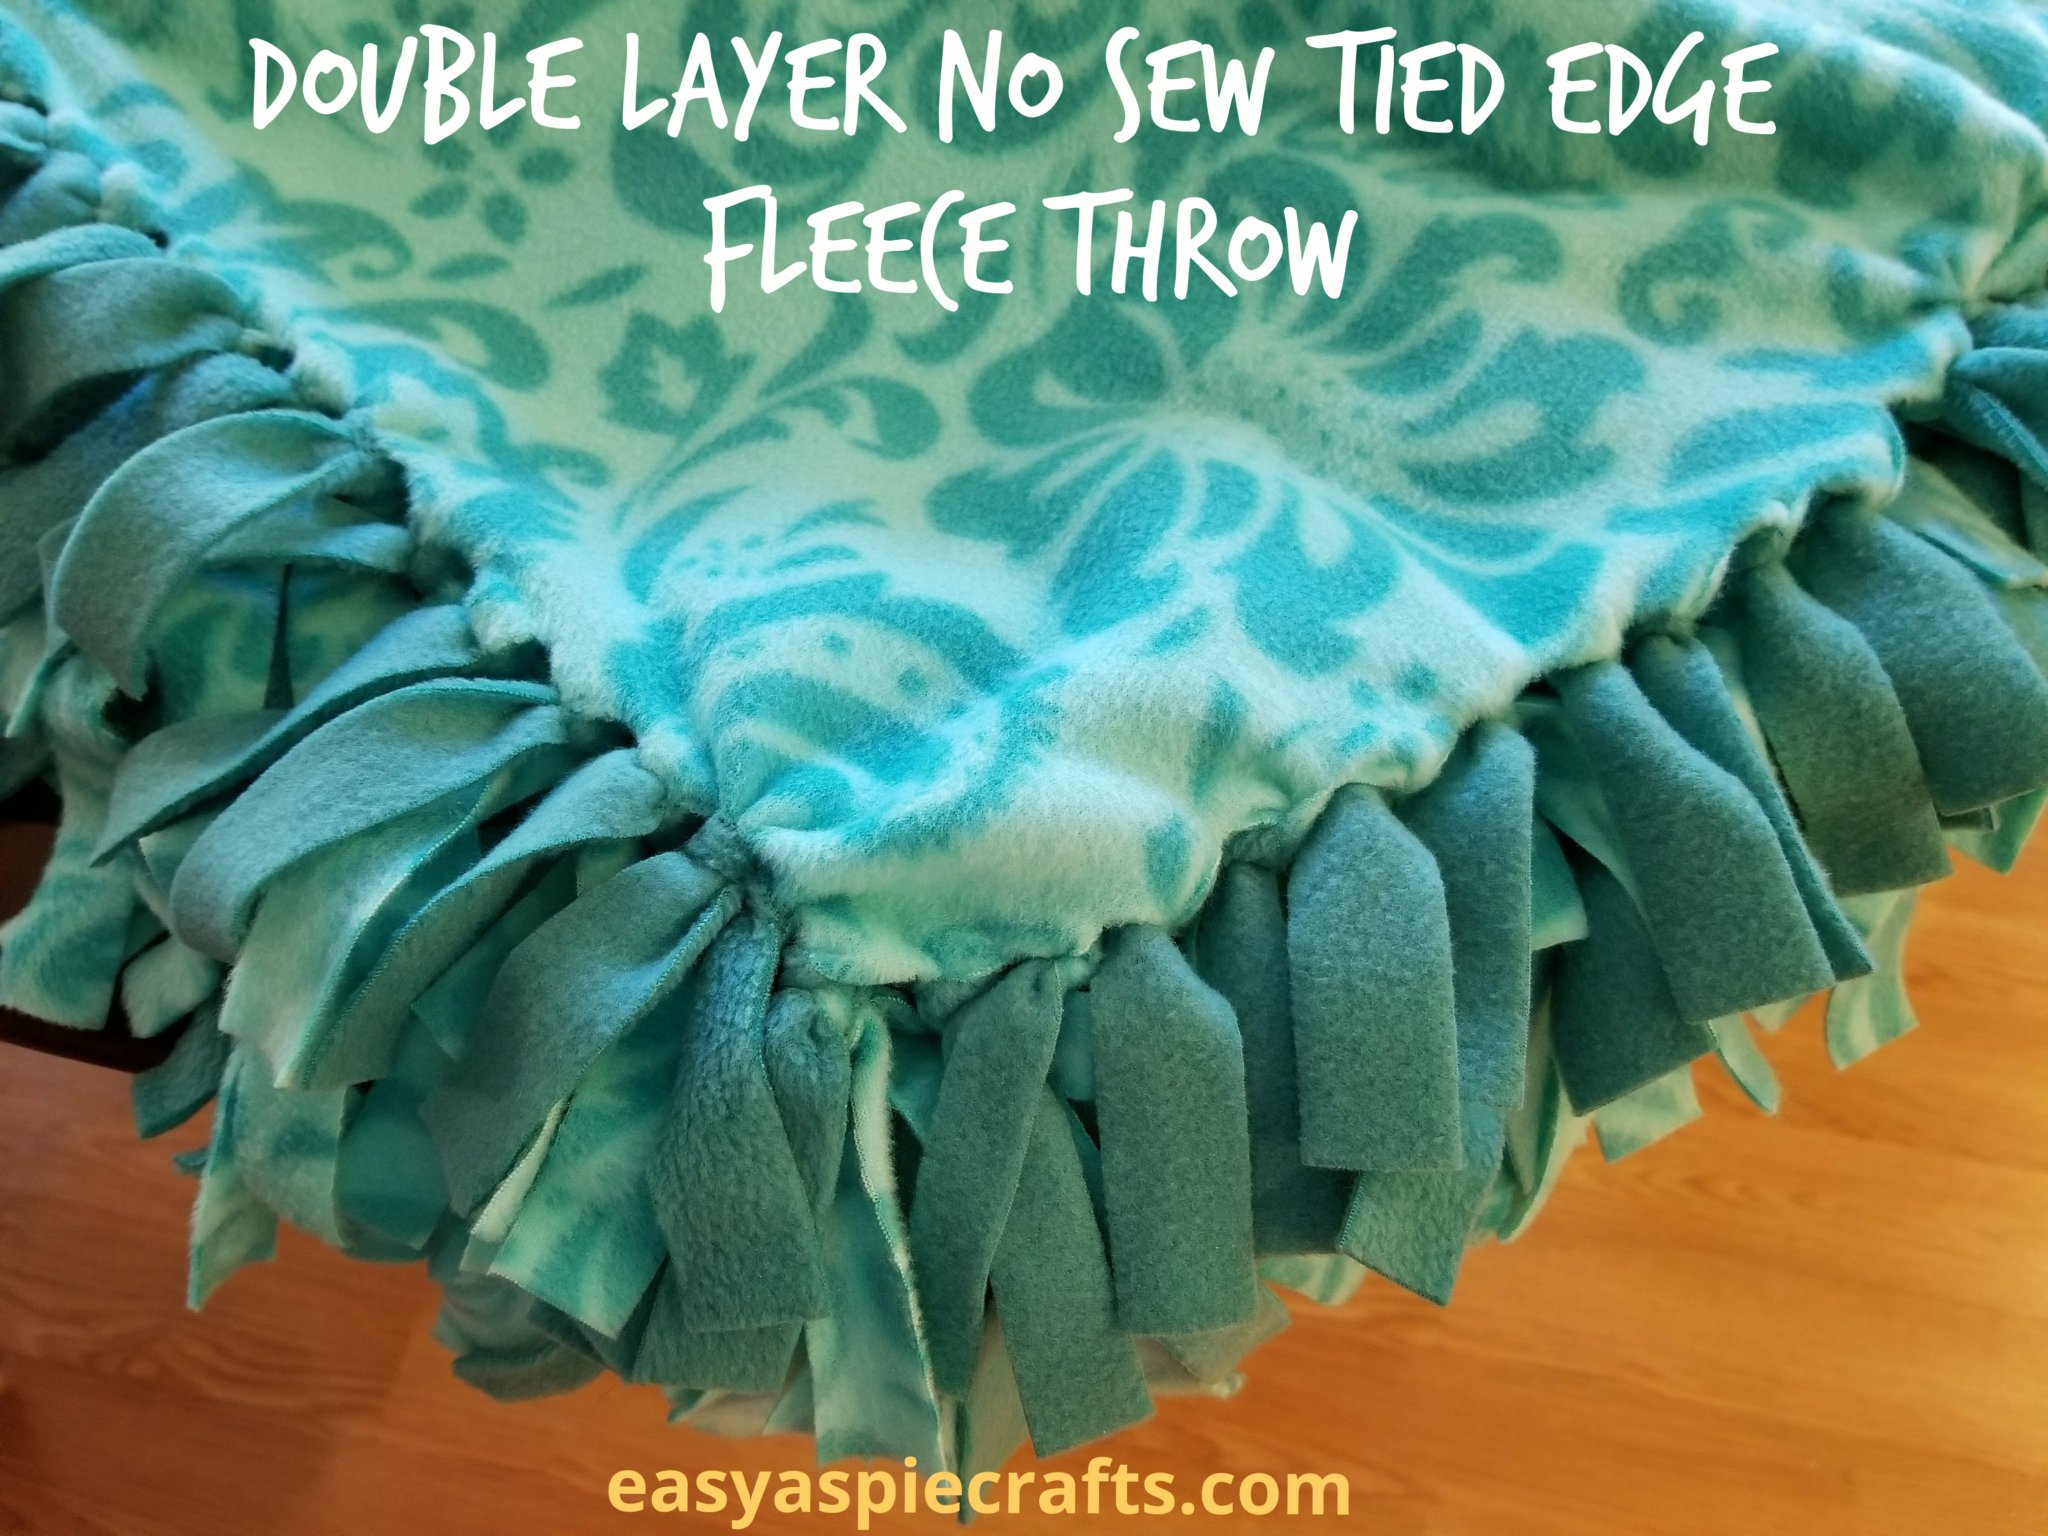 Double Layer No Sew Tied Edge Fleece Throw